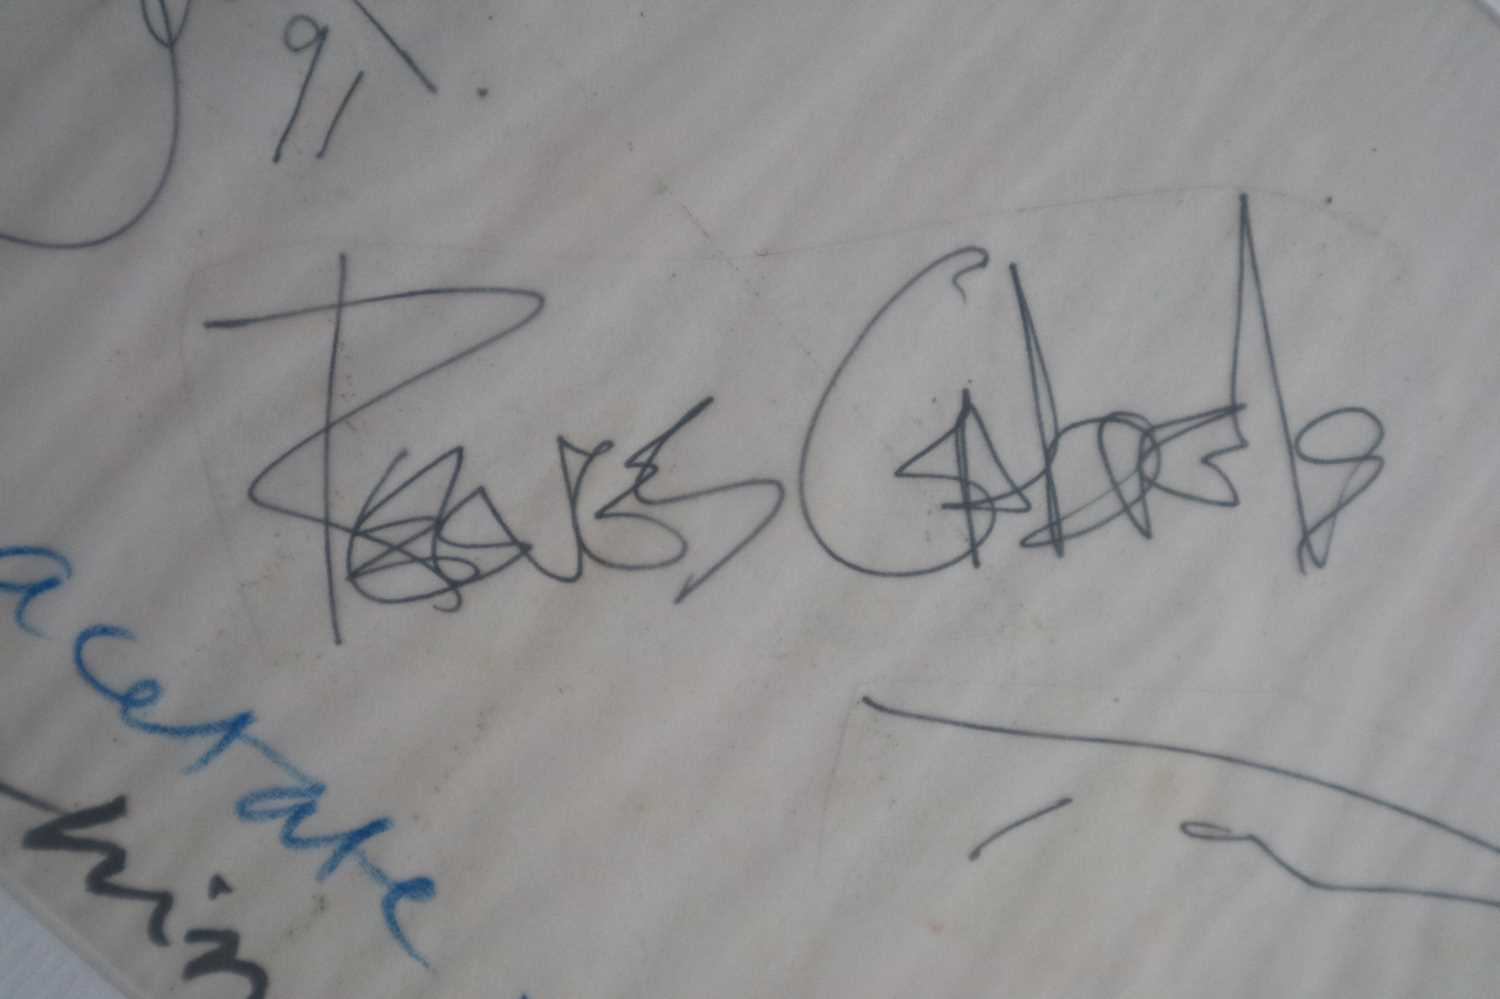 David Bowie and Tin Machine Band Signatures - Image 5 of 8